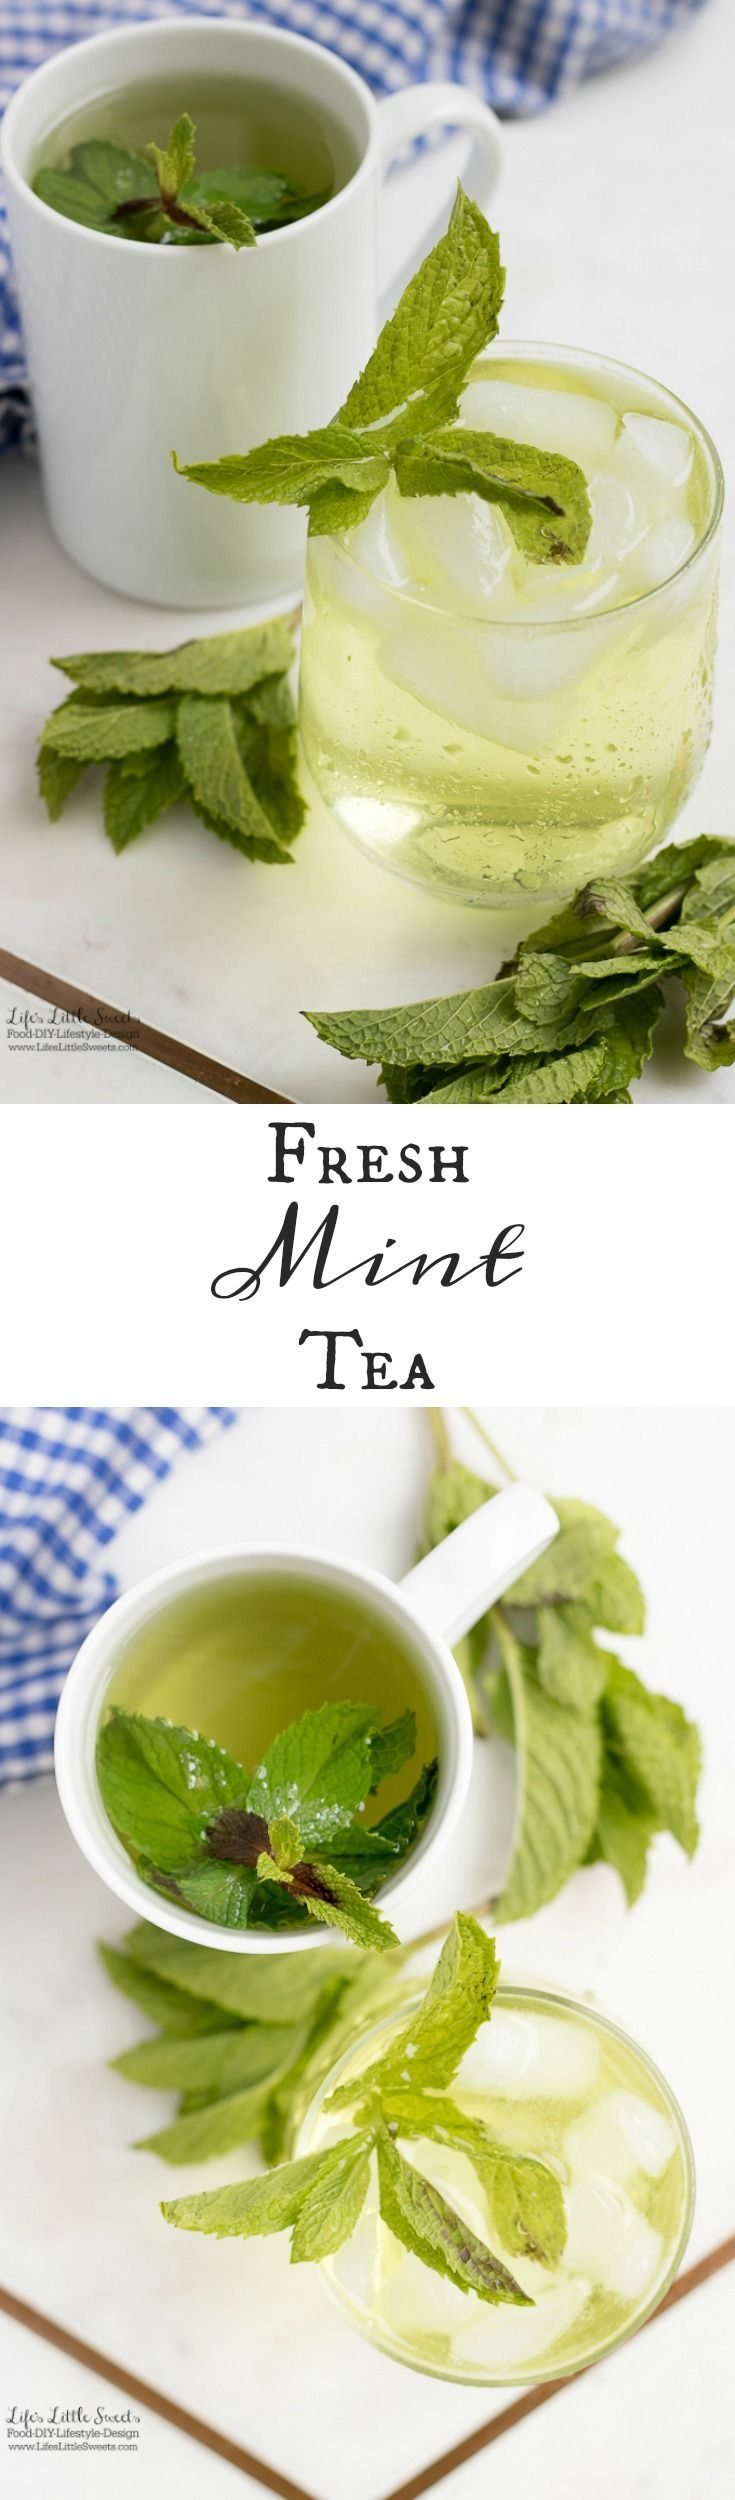 #Ad - This Fresh Mint Tea recipe is light, so easy to prepare and delicious to enjoy. All you need is fresh mint leaves, boiling water and a few minutes and then you can be some Fresh Mint Tea! Enjoy hot or cold. #ForWhatMattersMost #CollectiveBias @targe